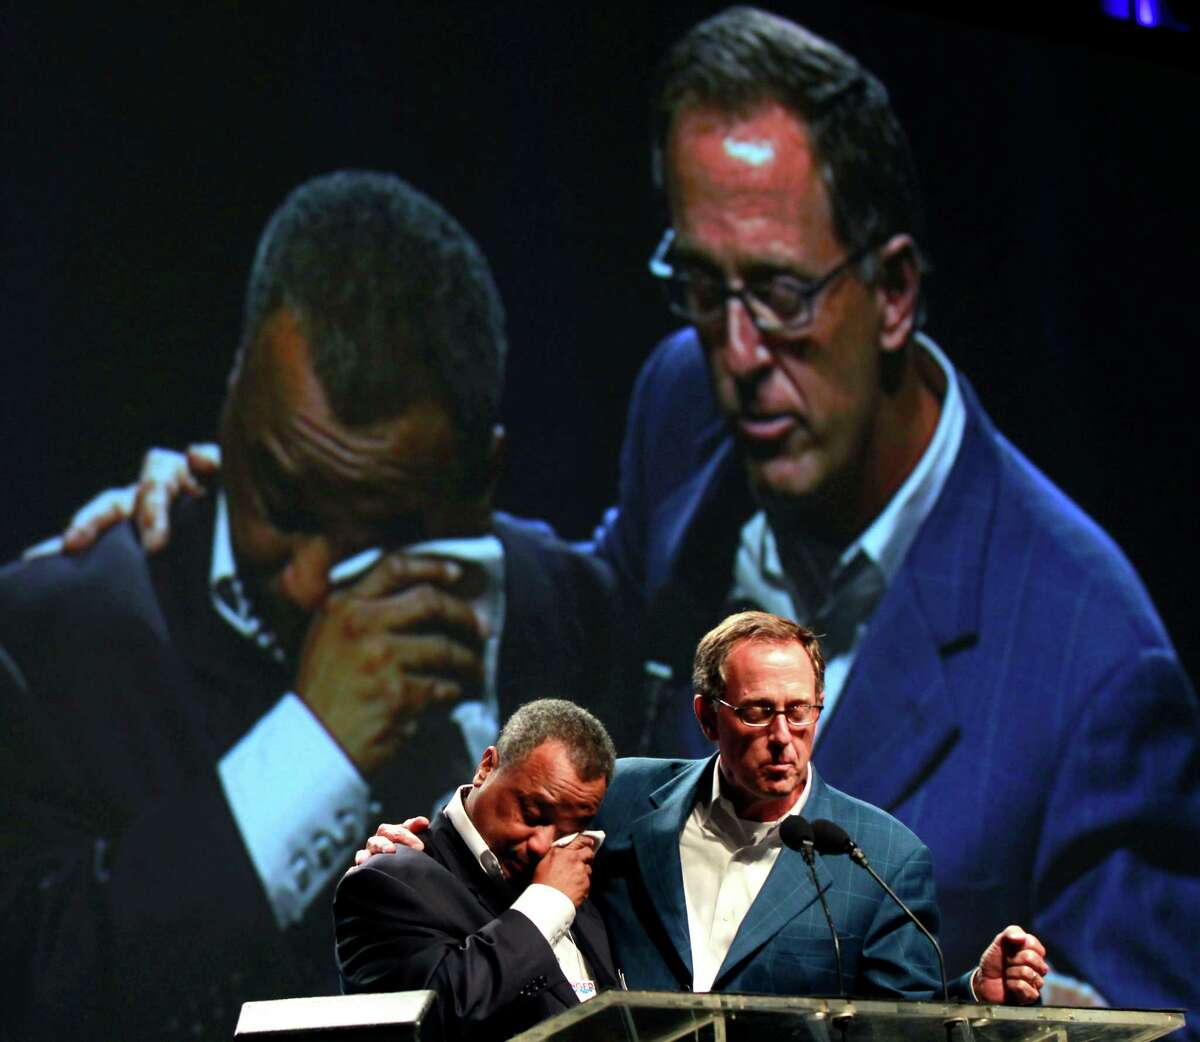 Fred Luter, Pastor of the Franklin Ave. Baptist Church in New Orleans, right, wipes away tears as he is elected as president of the Southern Baptist Convention, at the convention in New Orleans, Tuesday, June 19, 2012. Luter is the first African-American to be elected president of the nation's largest Protestant denomination. Right is current president Bryant Wright. (AP Photo/Gerald Herbert)